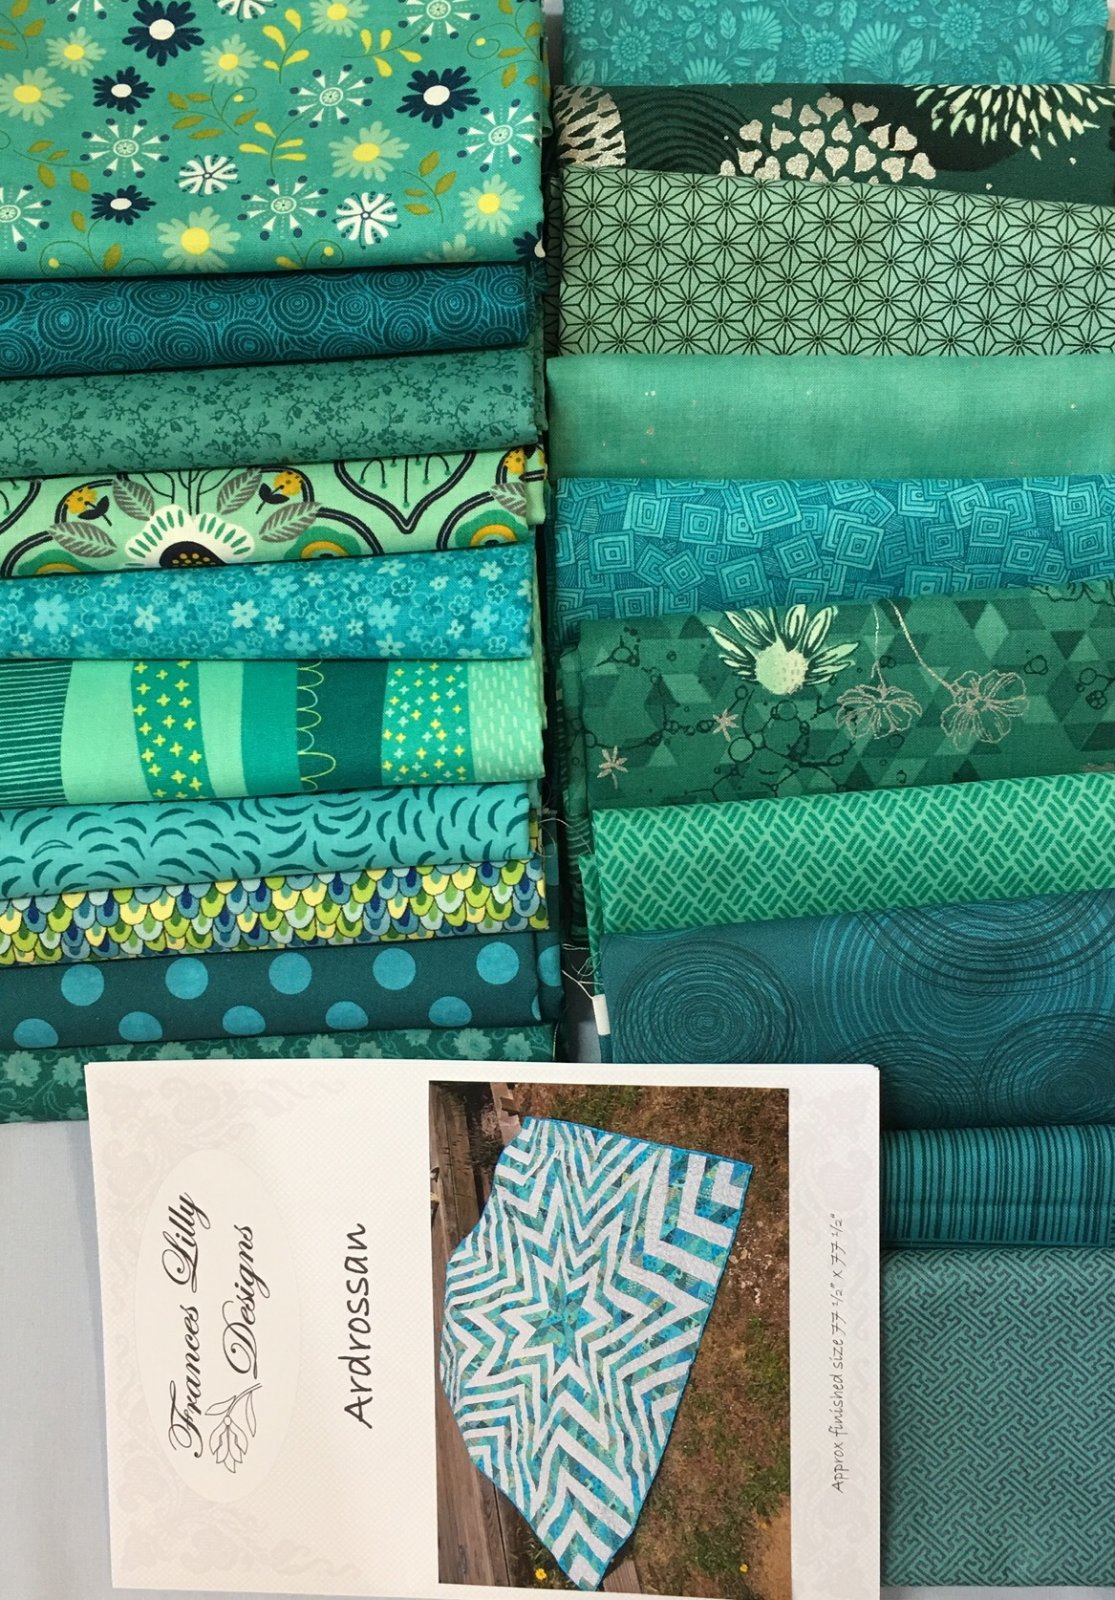 Ardrossan fabric starter kit with pattern